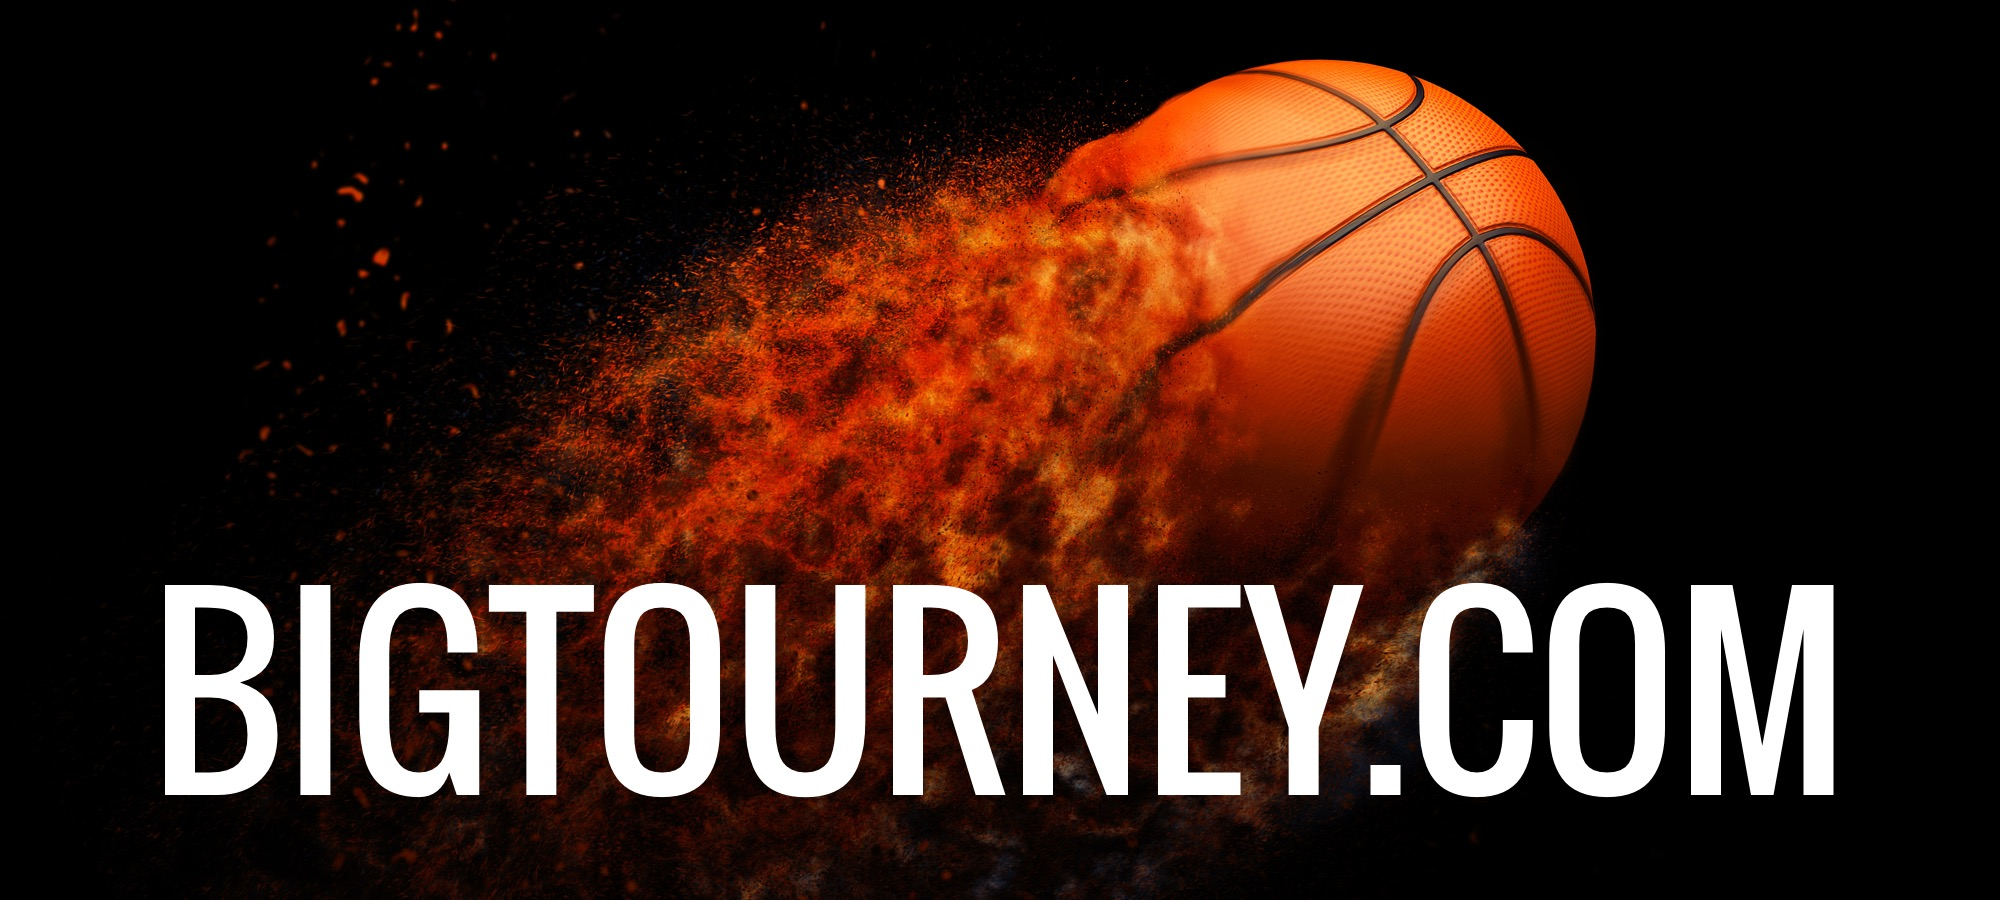 The Big Tourney tournament logo